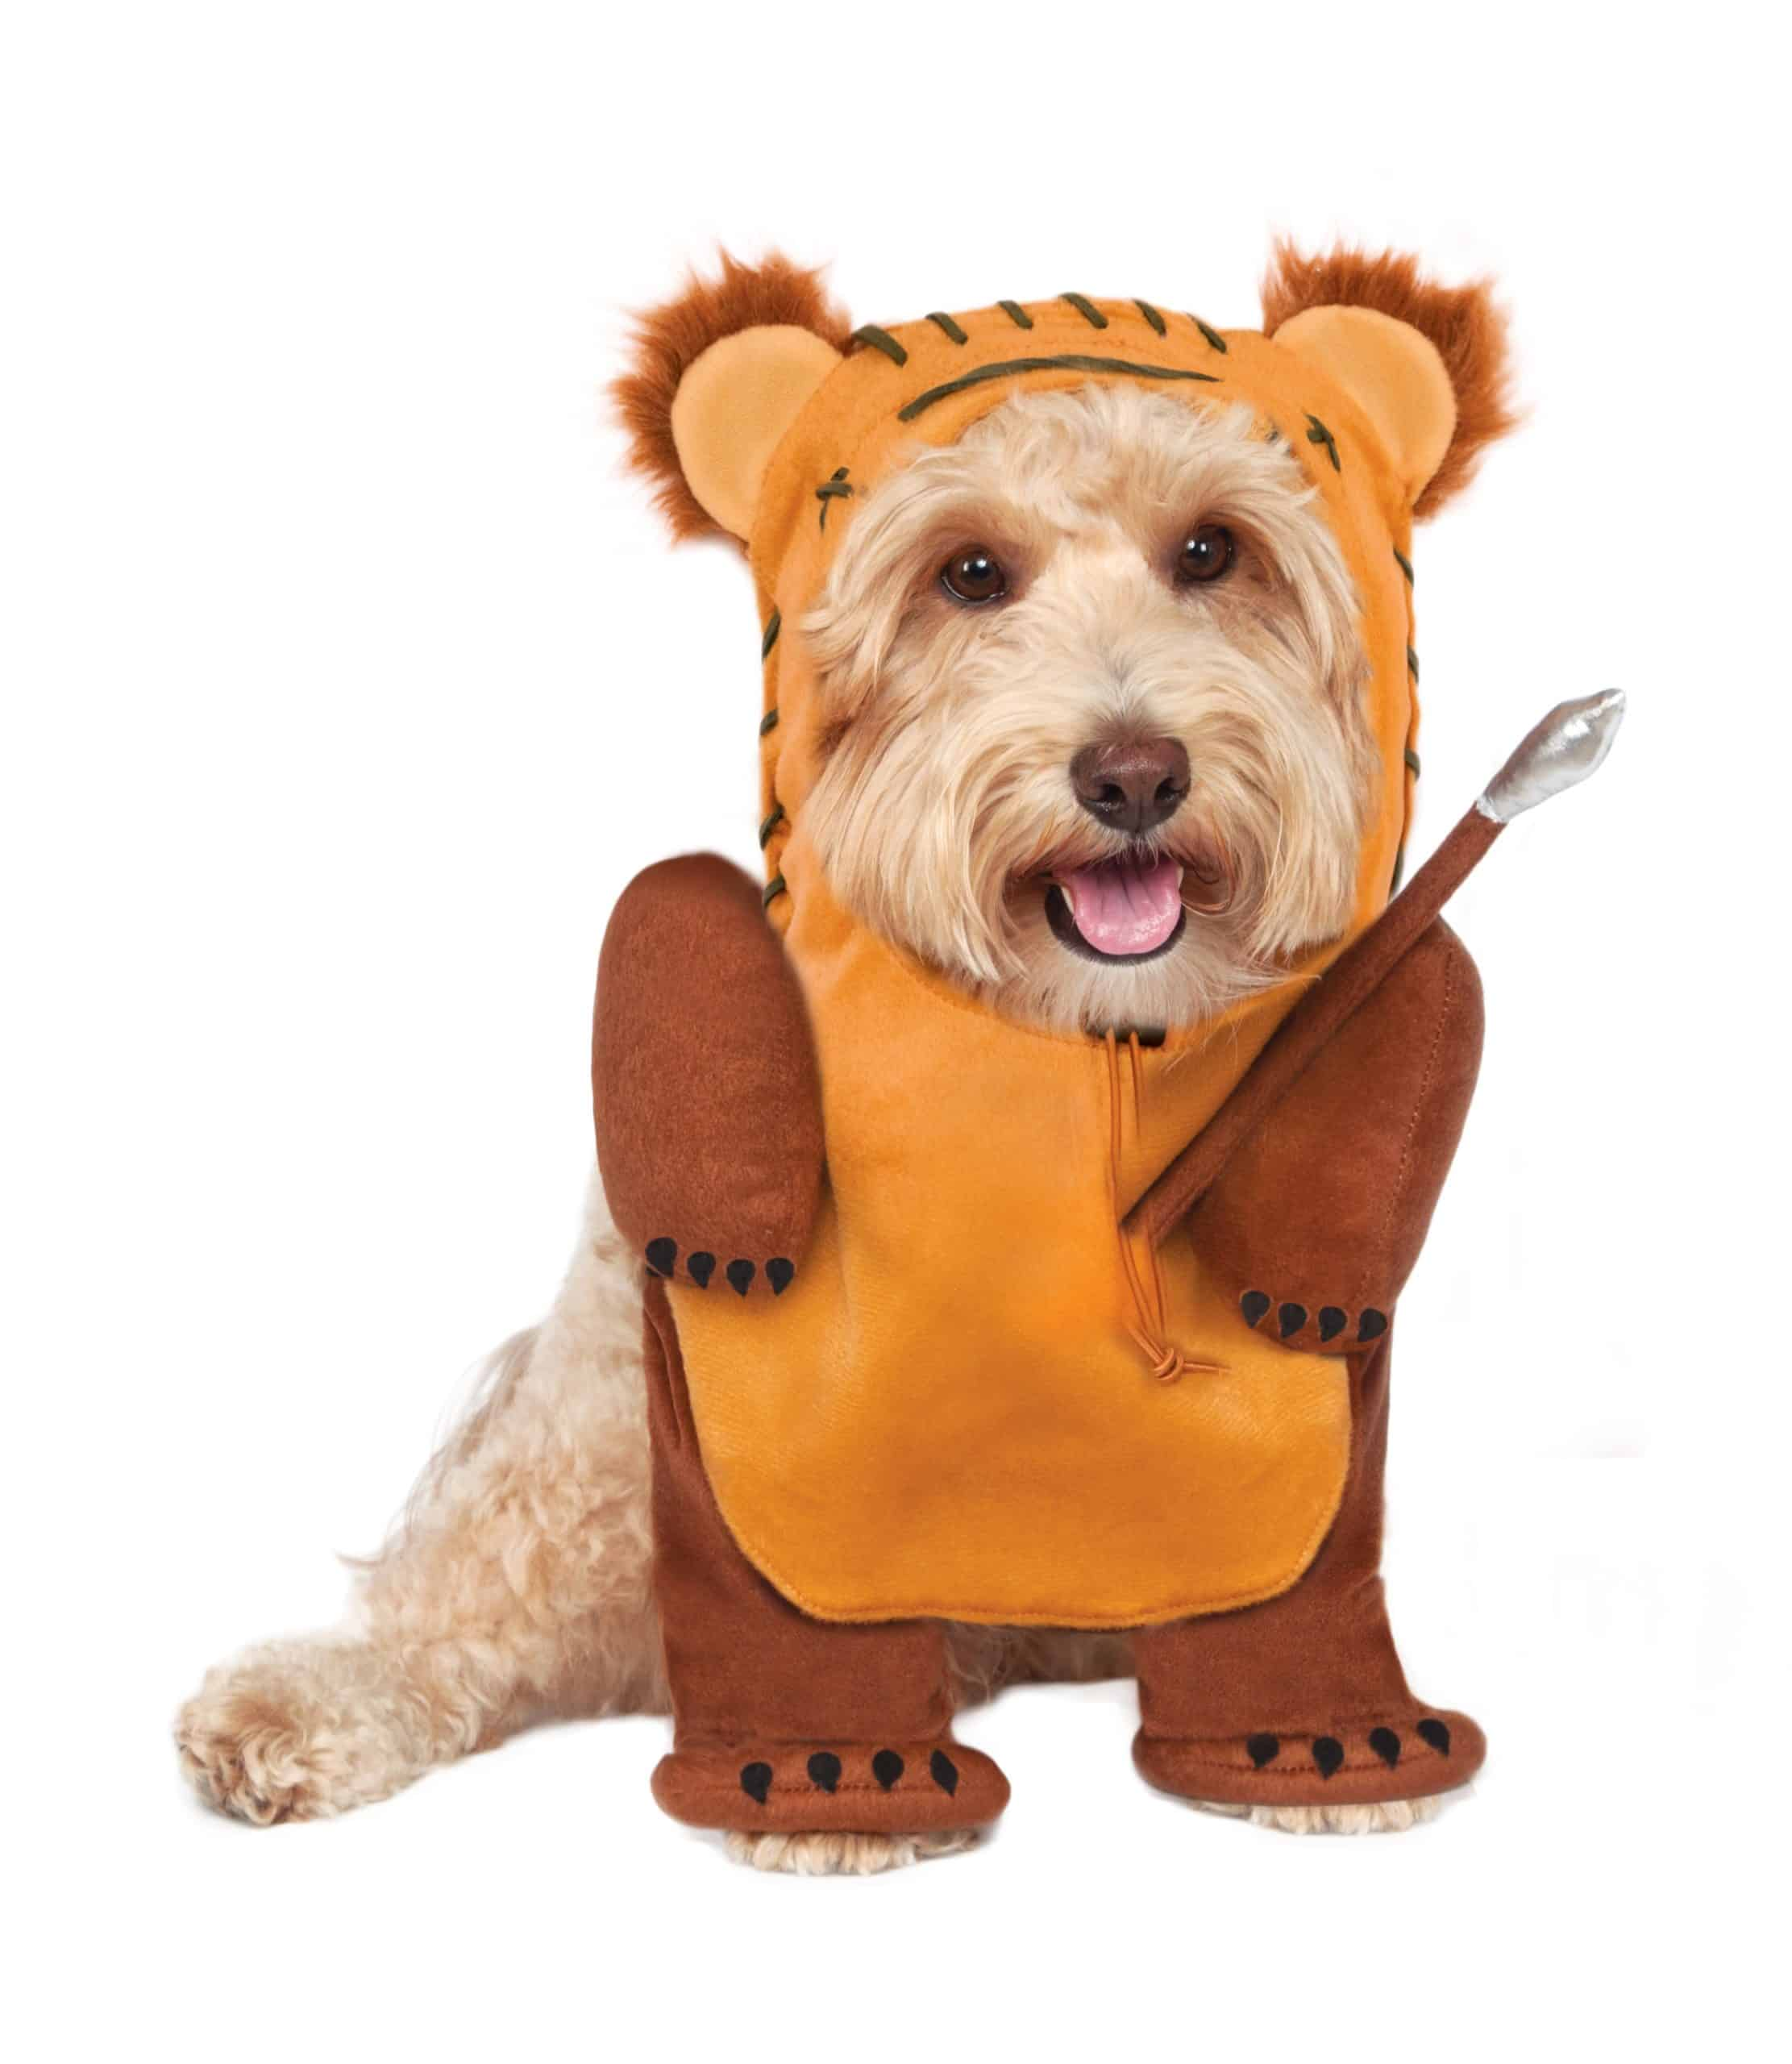 Star Wars Walking Ewok Dog Costume